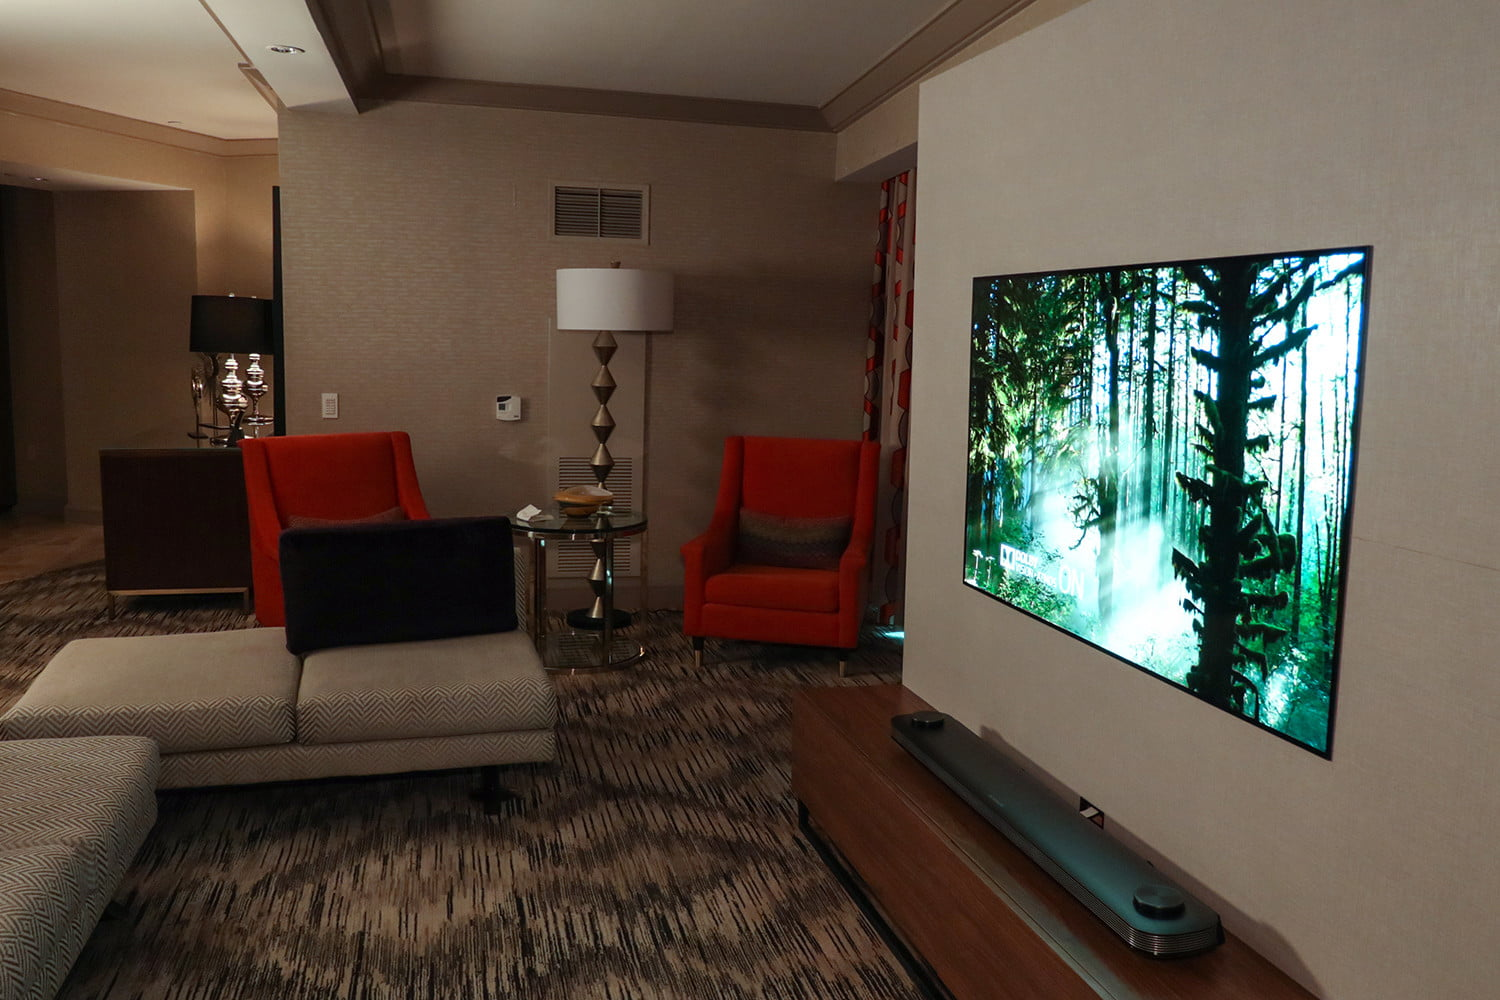 4K TV Guide: Everything You Need To Know